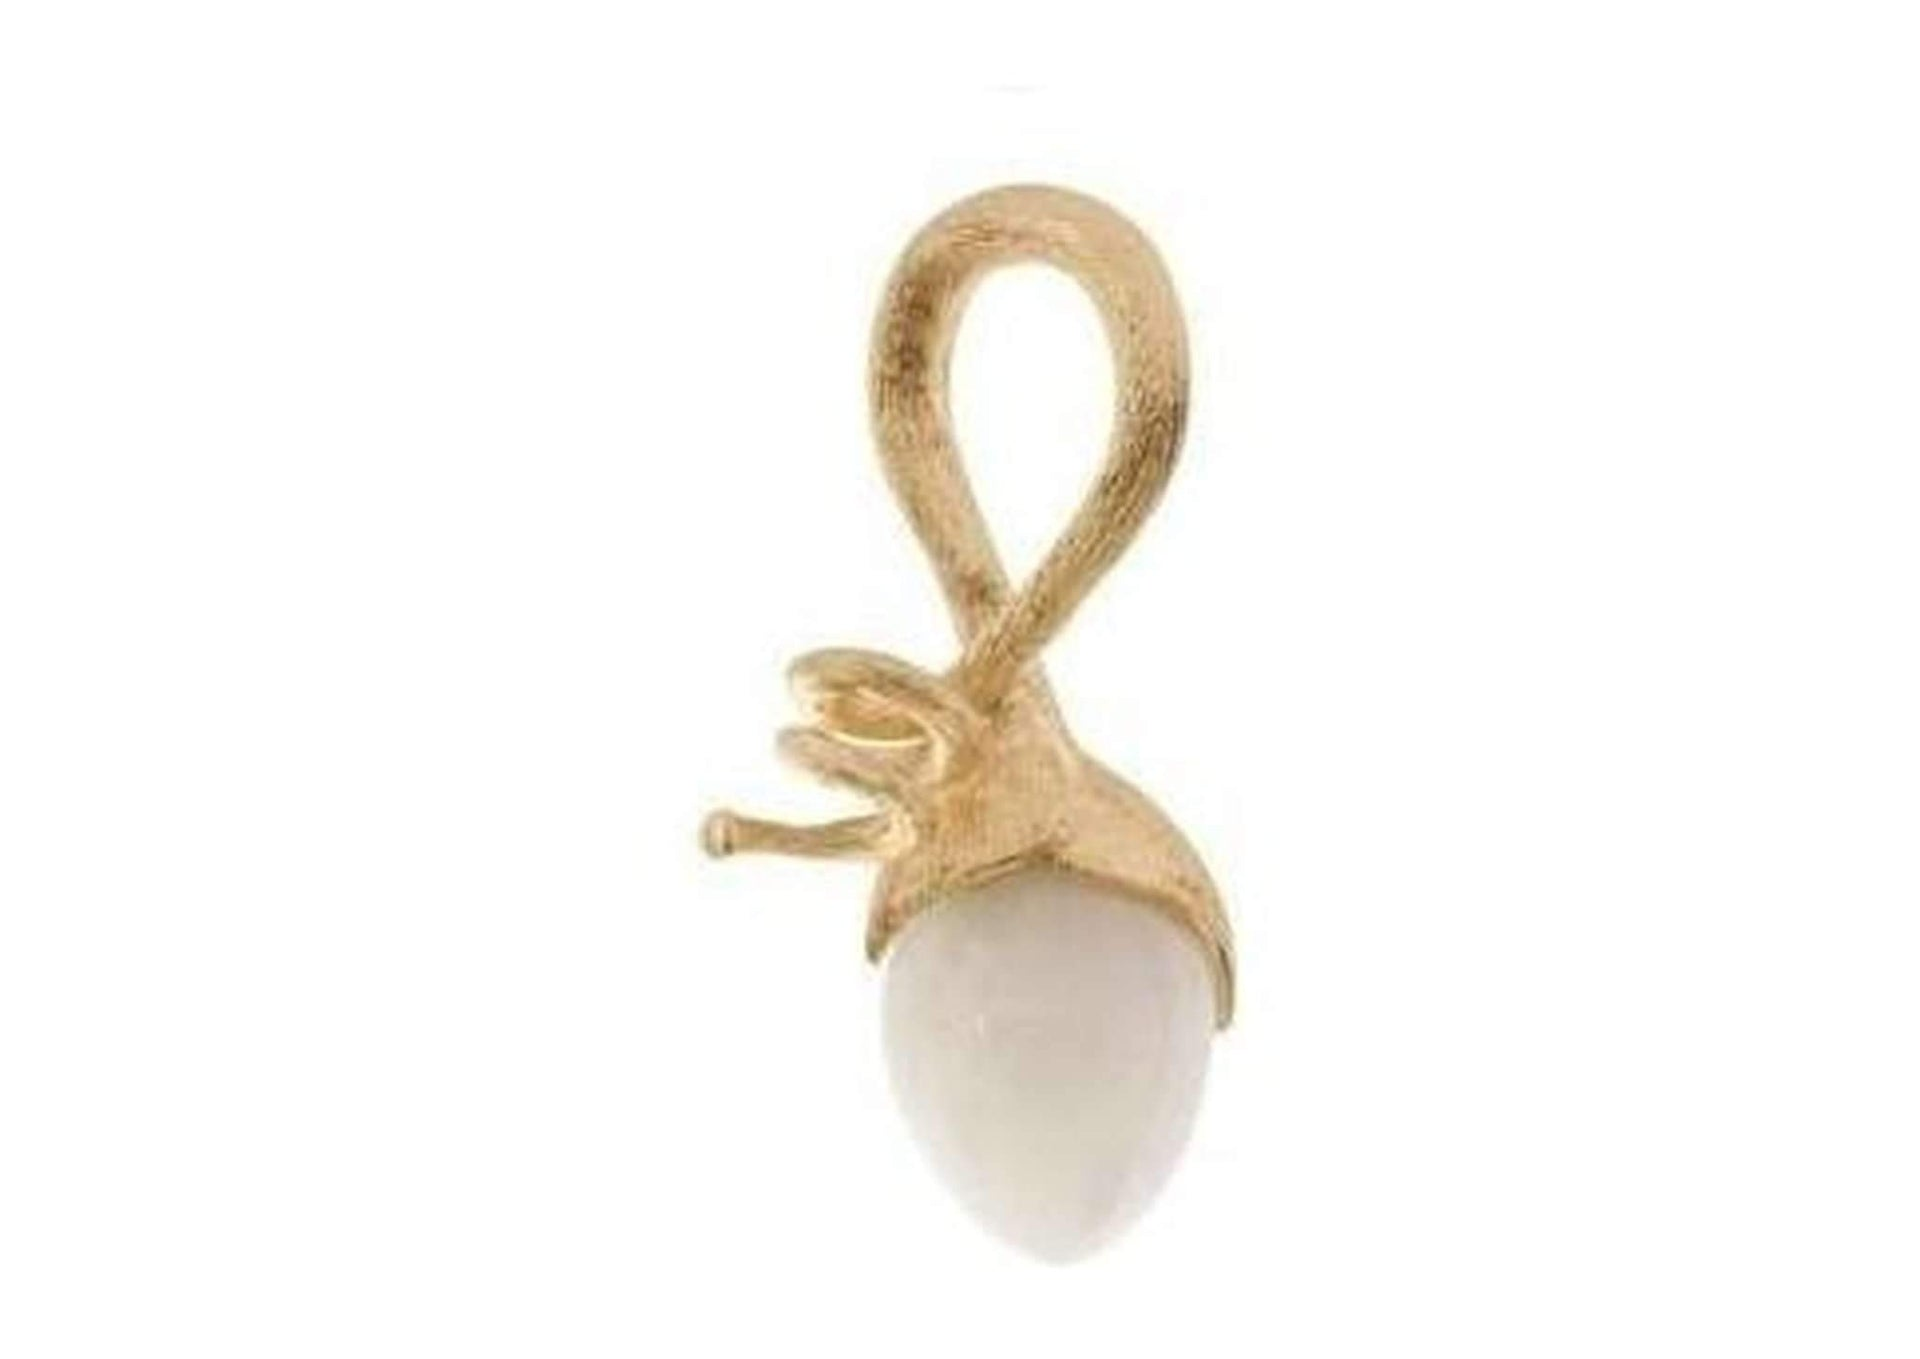 Lotus pendant in 18K yellow gold with white moonstone-by-Ole Lynggaard-from official stockist-Jens Hansen